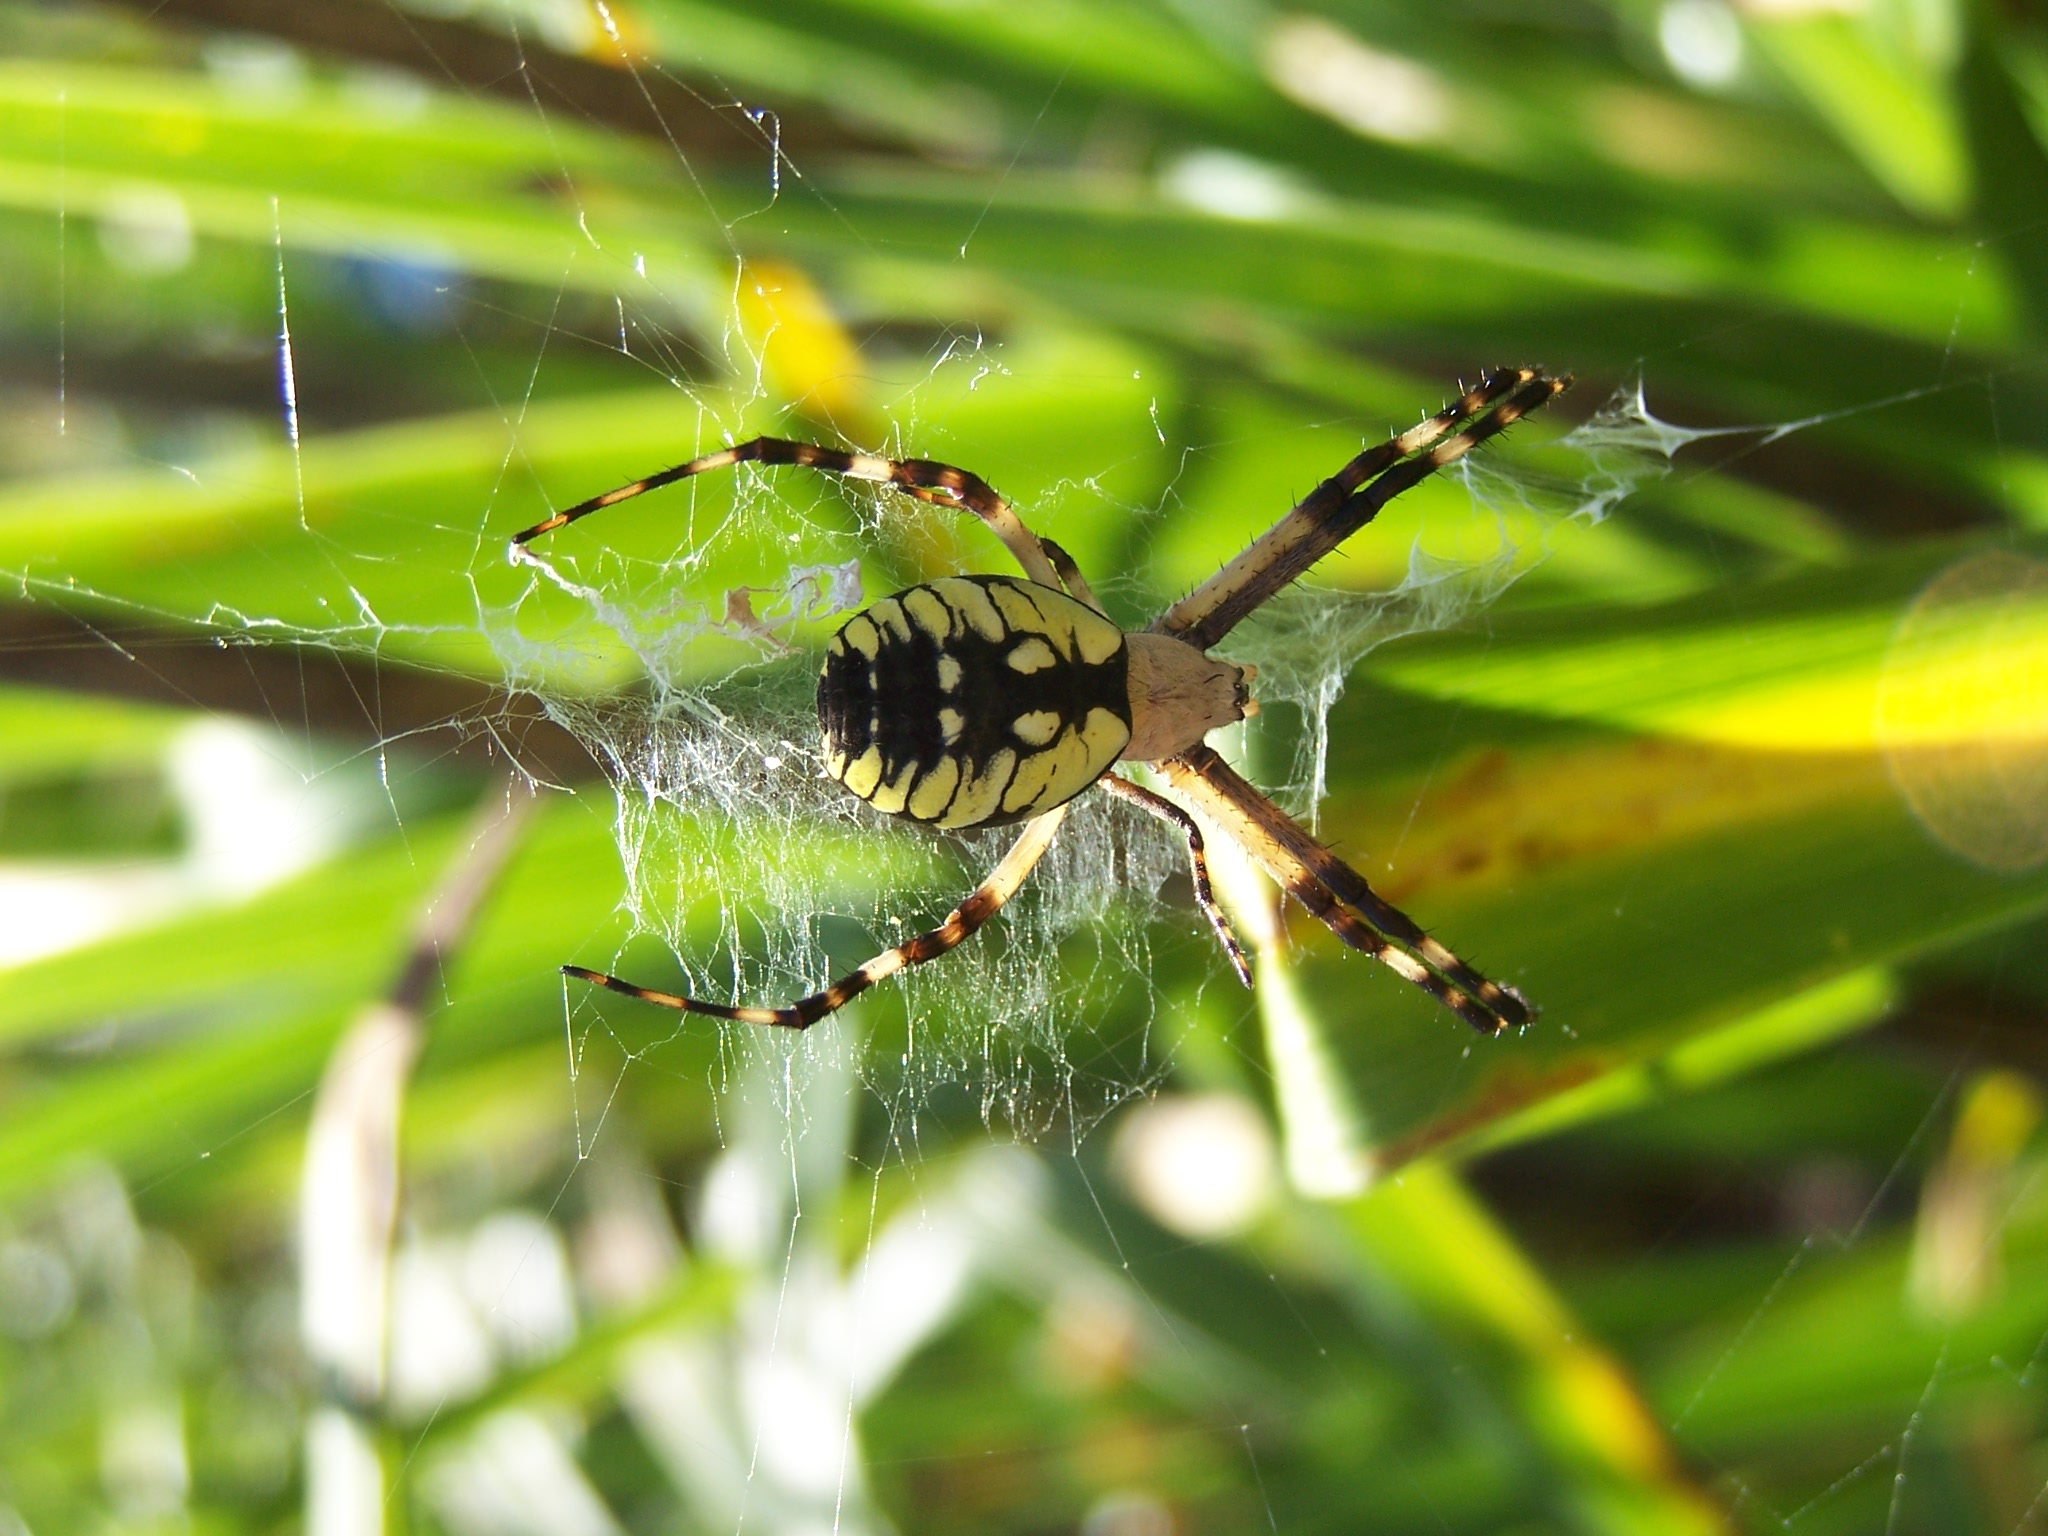 We love our garden spiders.